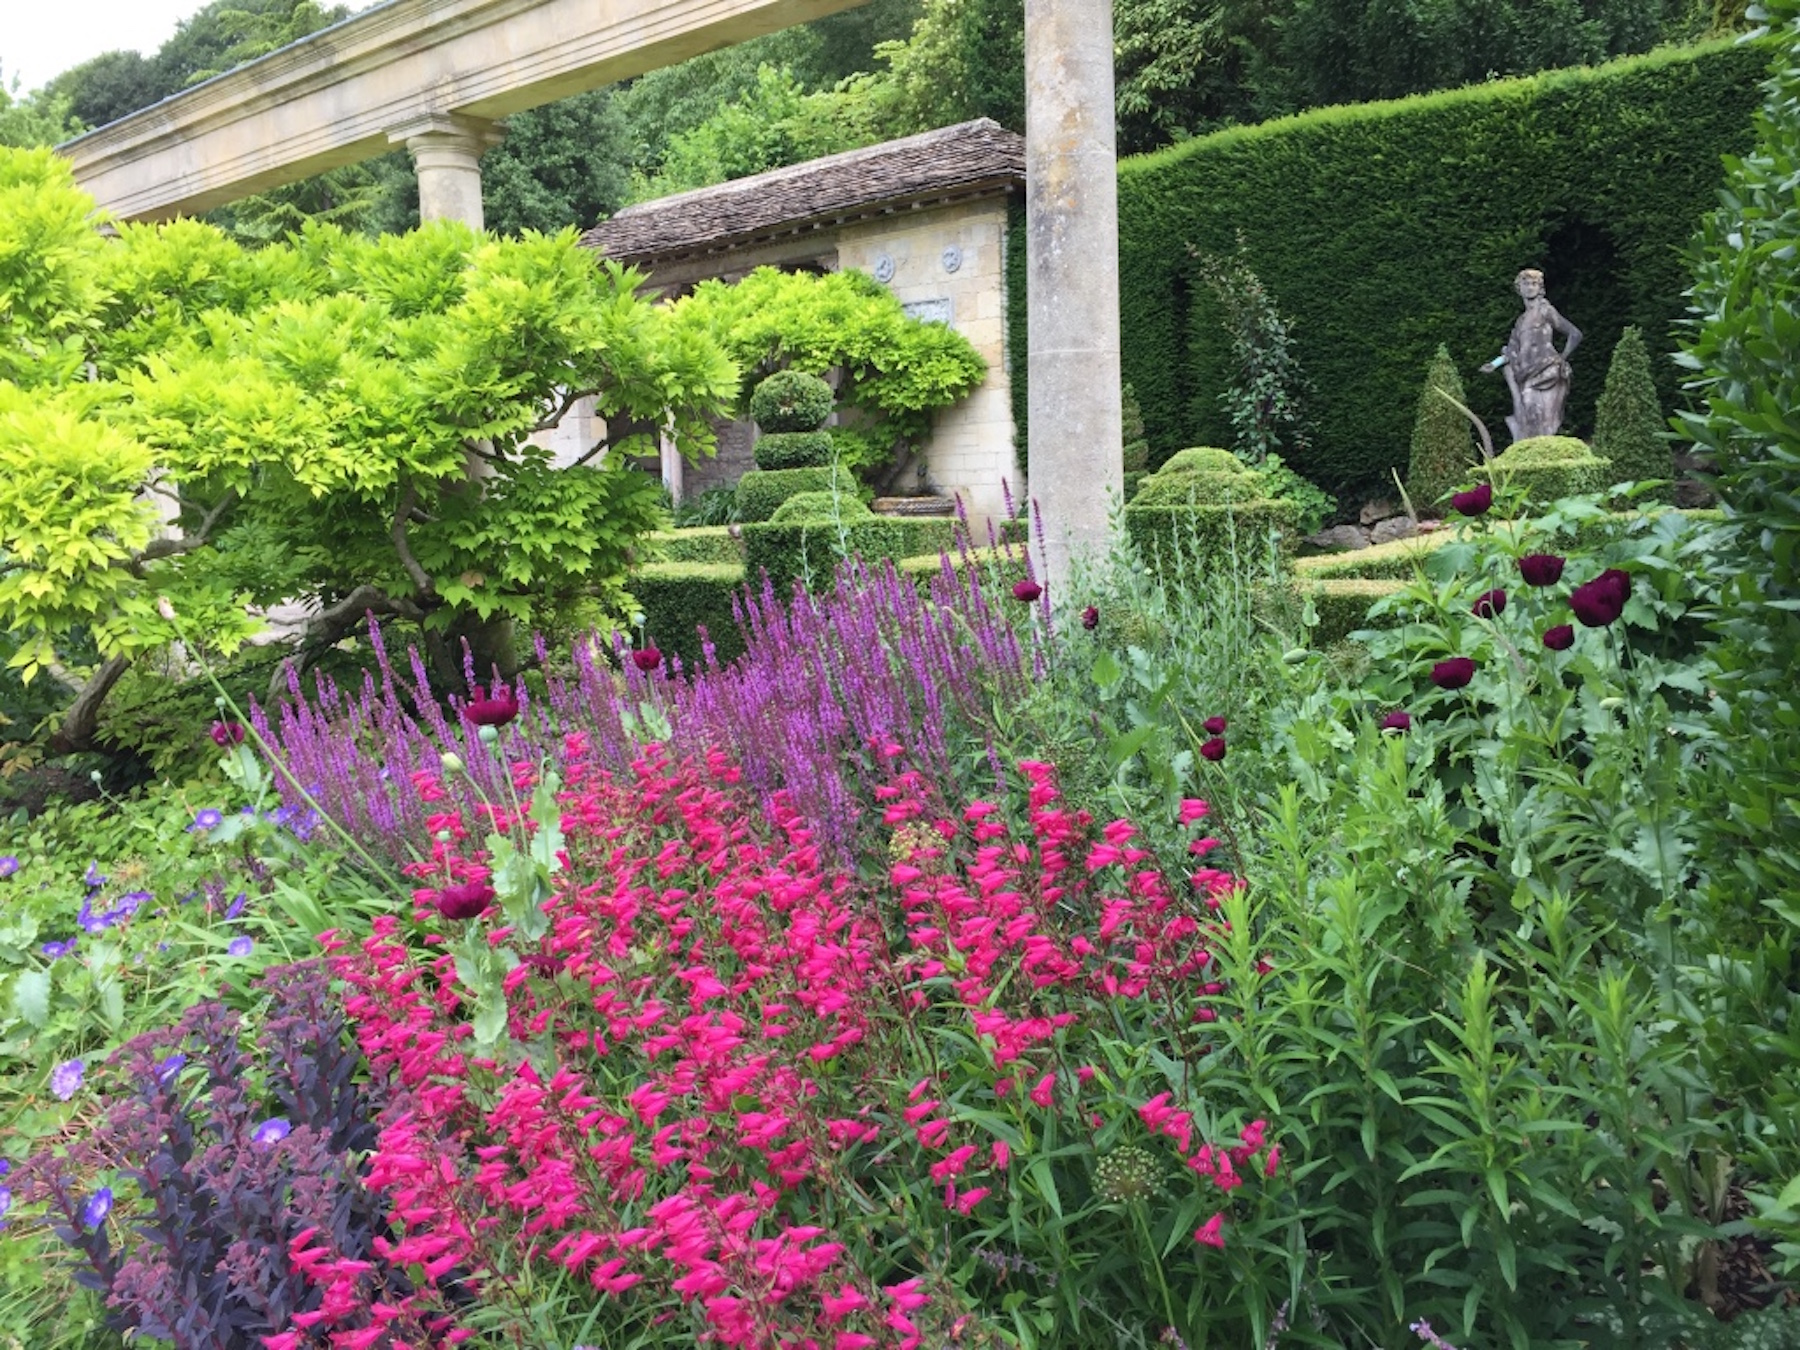 Iford Manor - July 2016